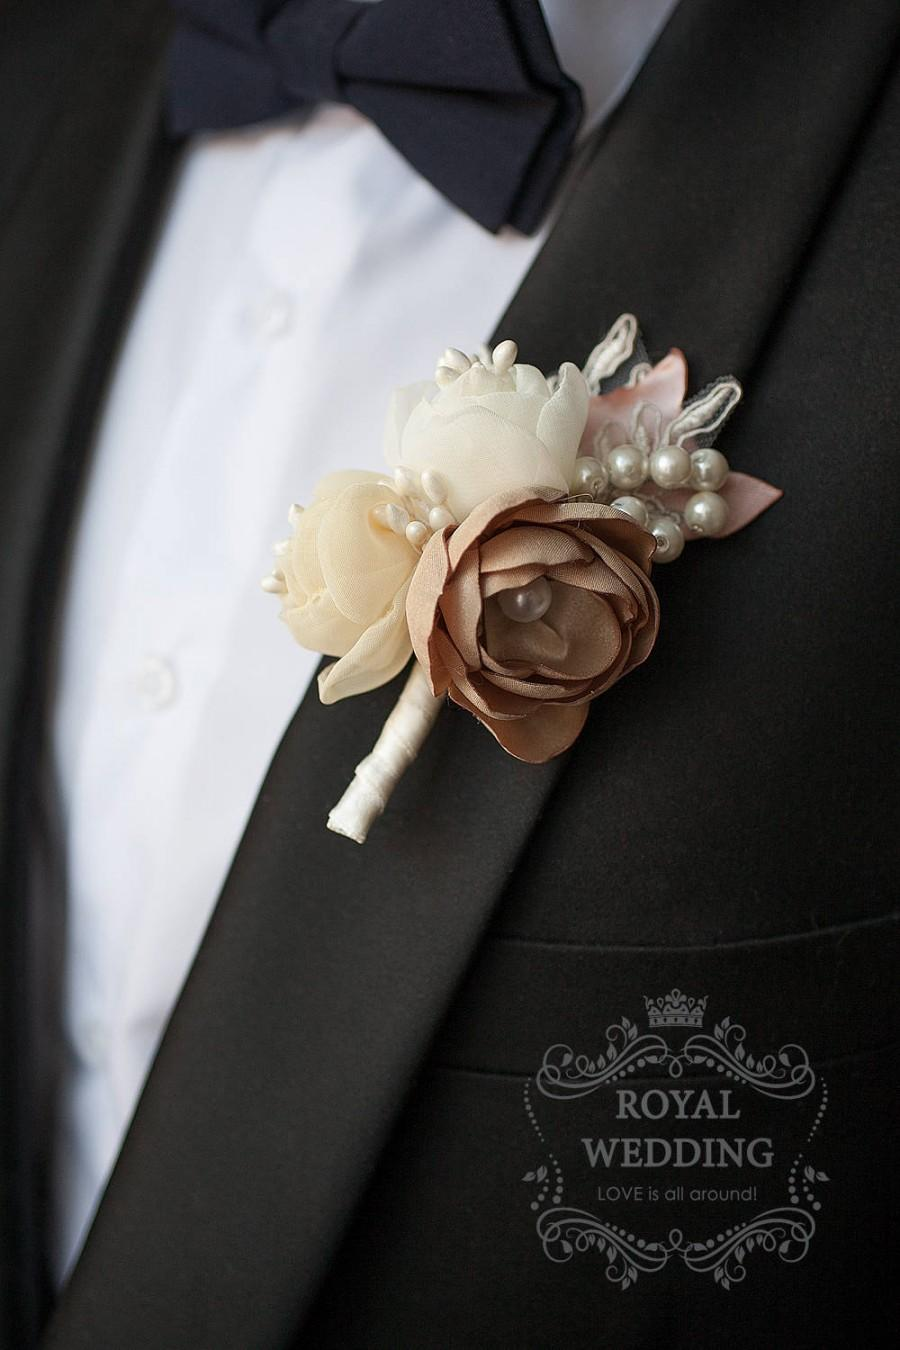 Mariage - Fabric Rose Cream Wedding Boutonniere Groom Accessories Jewelry Pink Decor Groomsman Keepsake Brooch Father Of The Bride Wedding Boutonniere